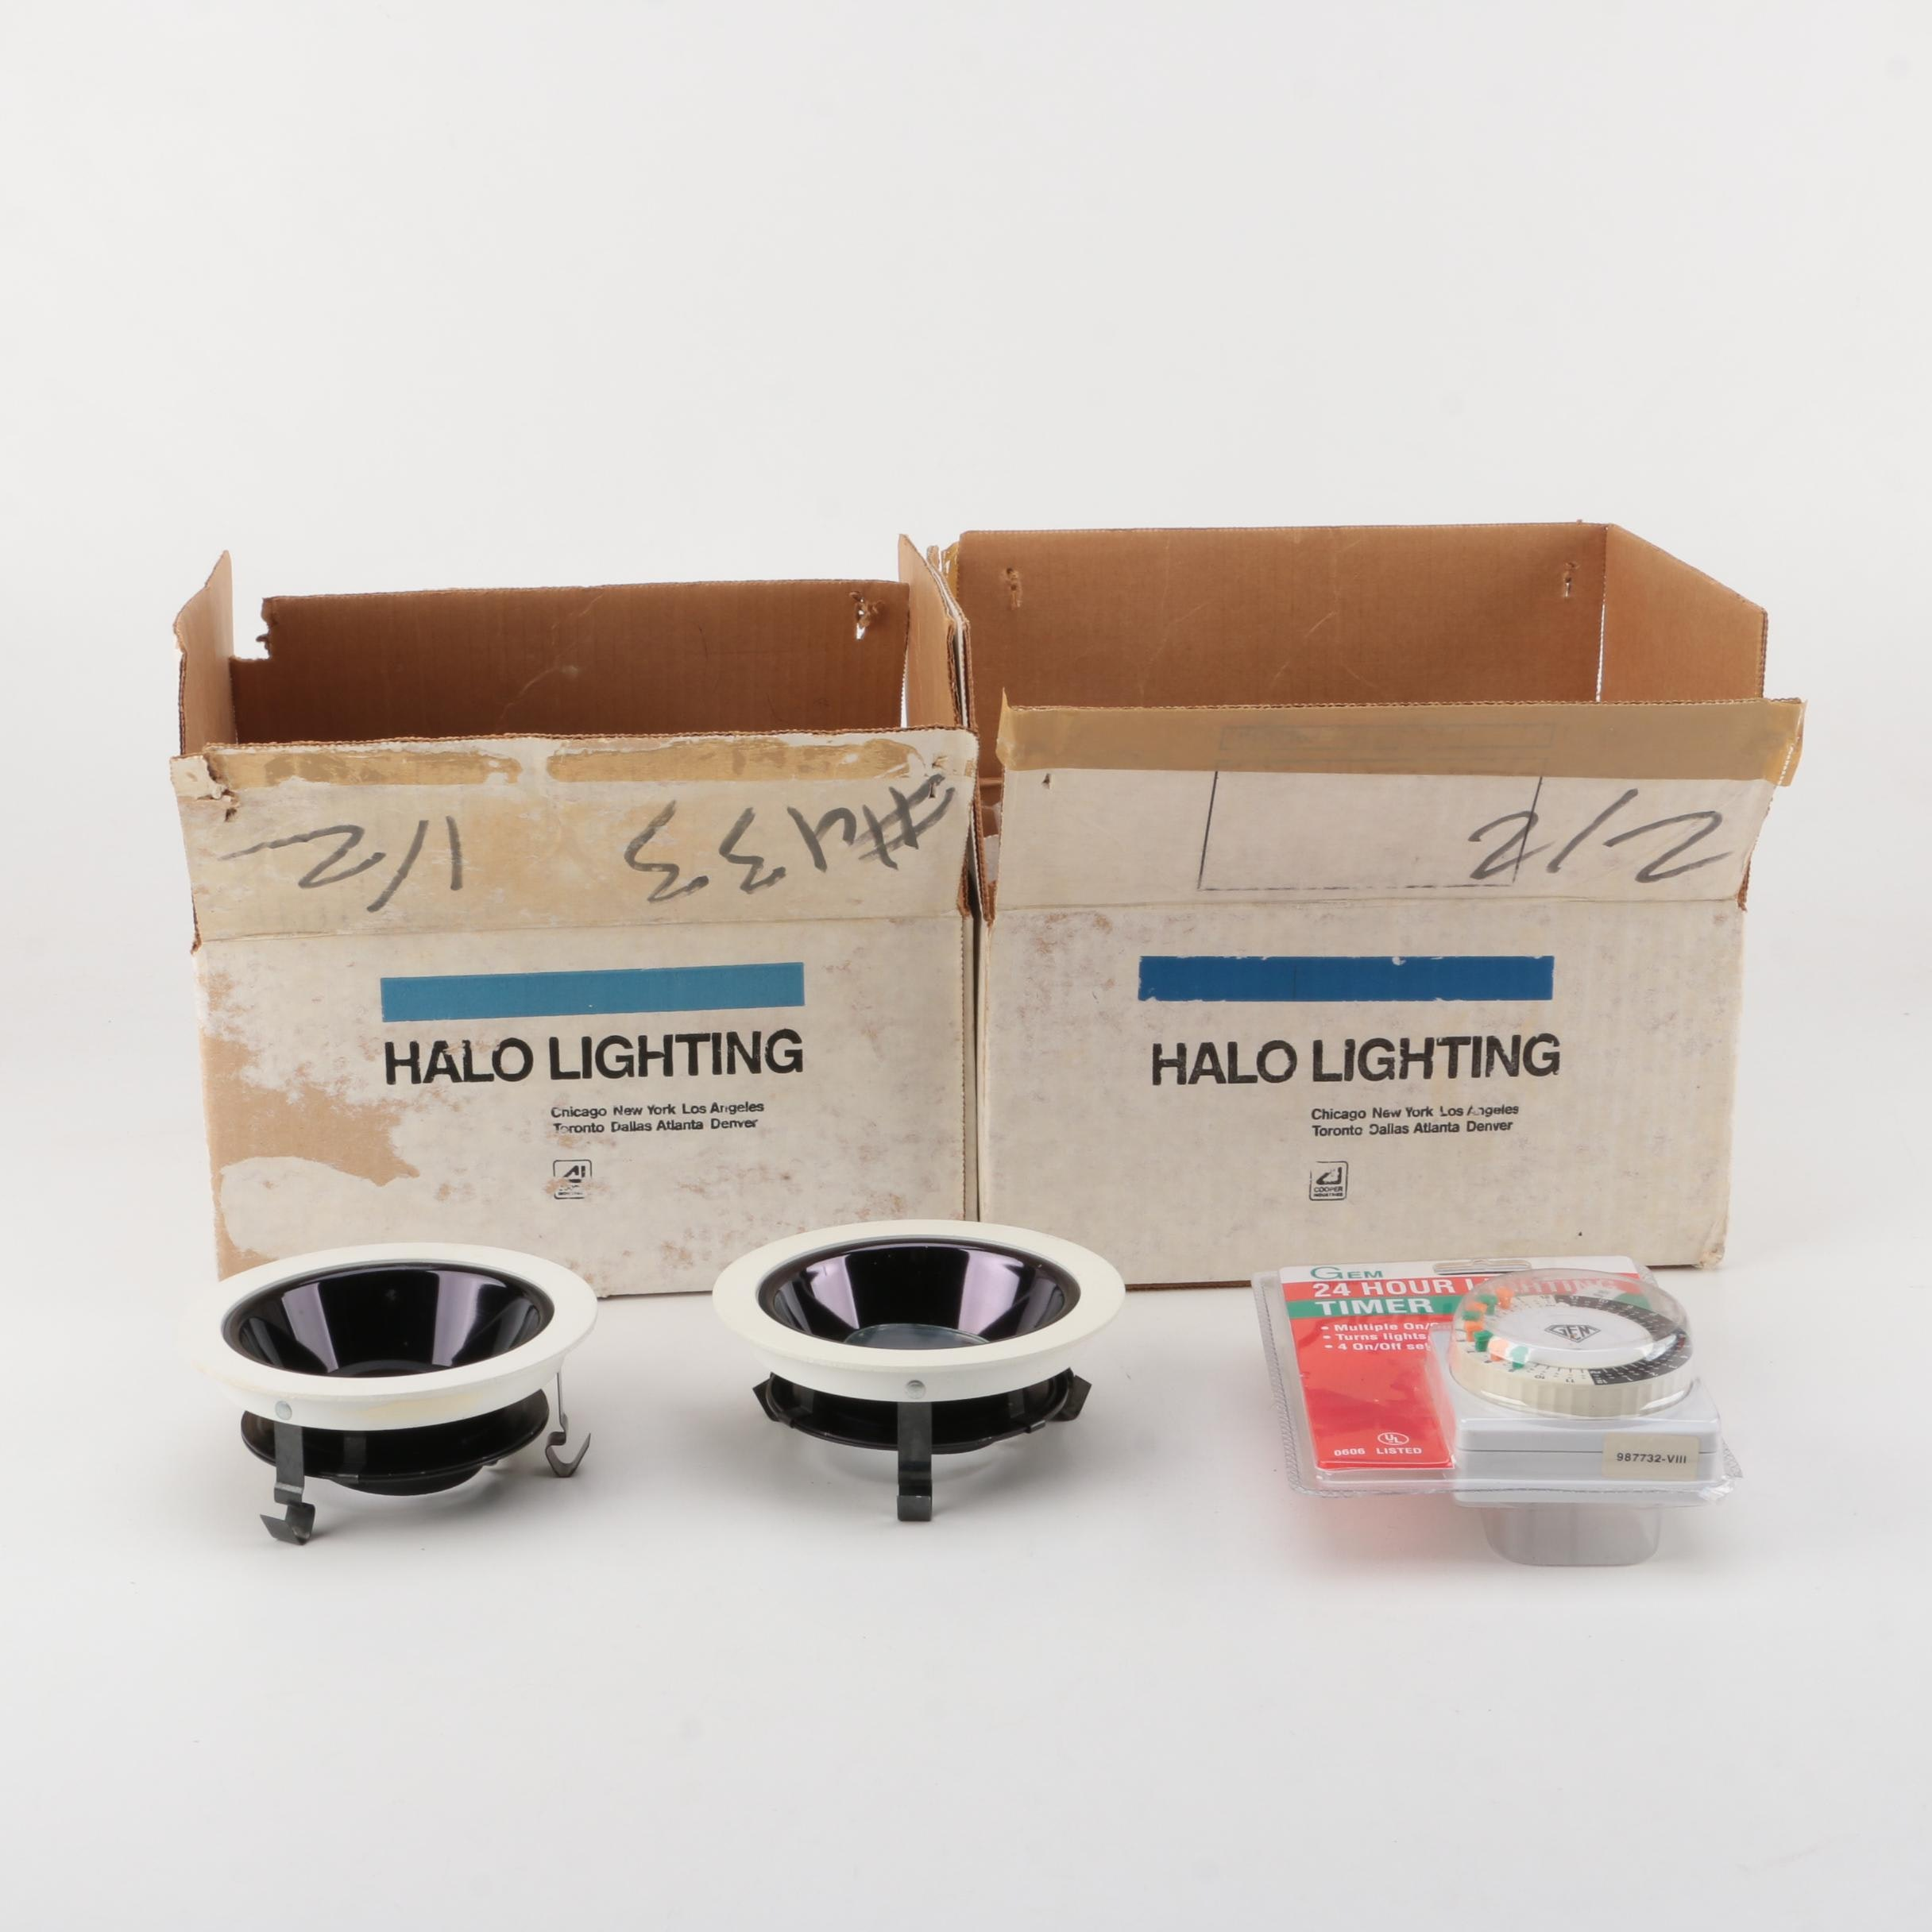 Set of Outdoor Halo Lighting Fixtures and Timer